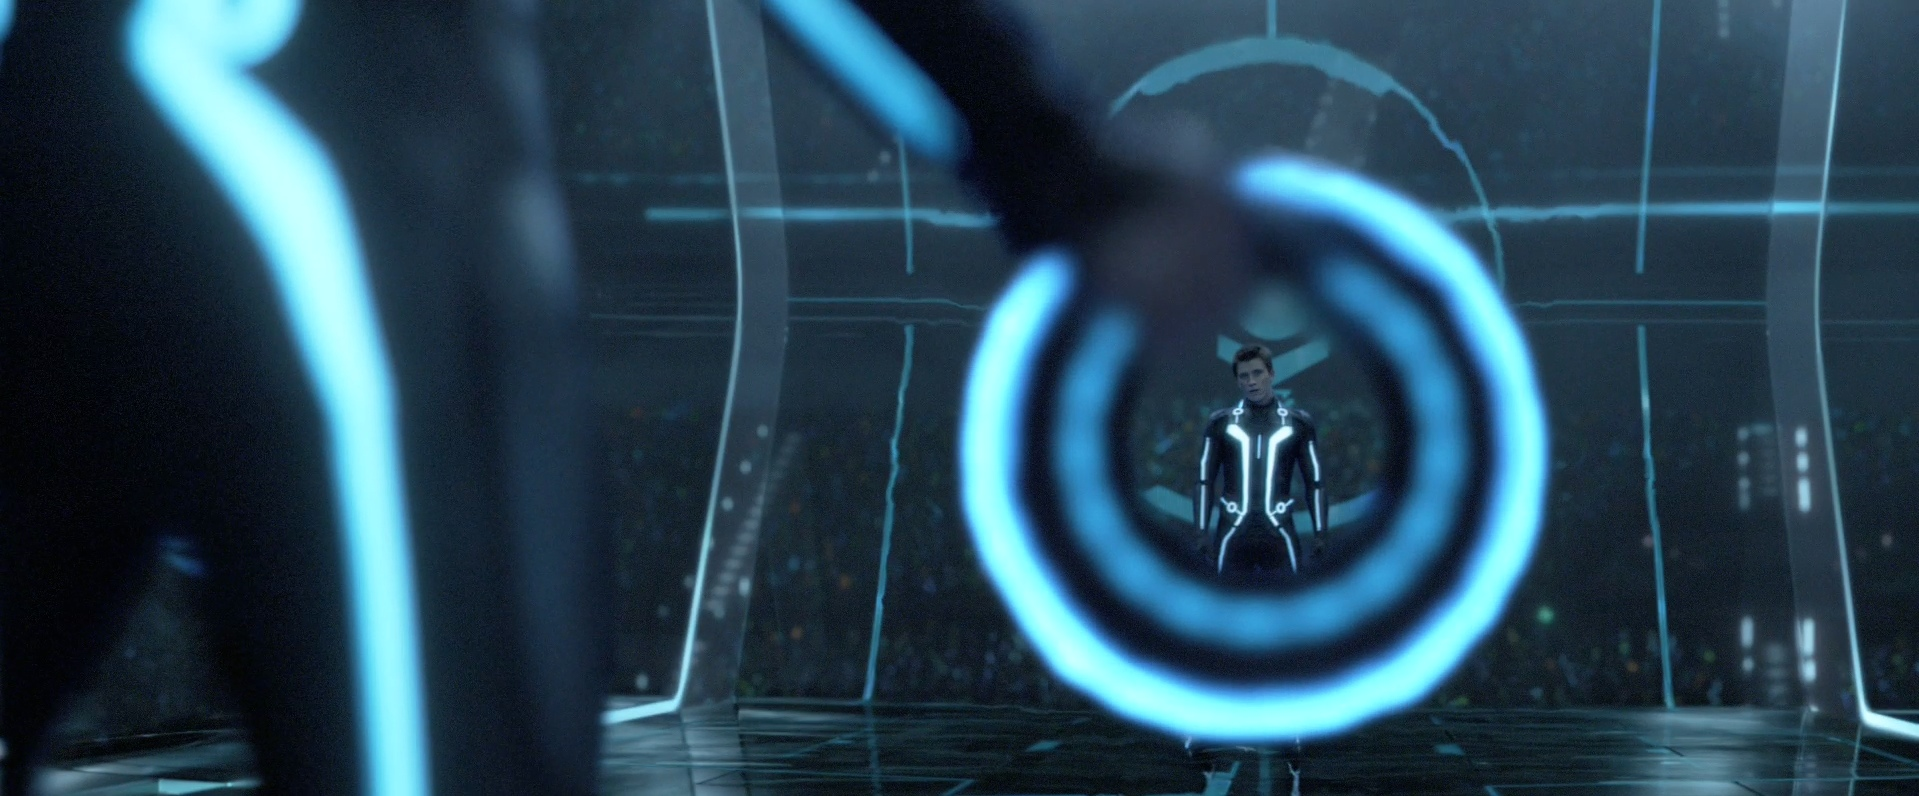 70 high resolution photos from tron legacy – /film